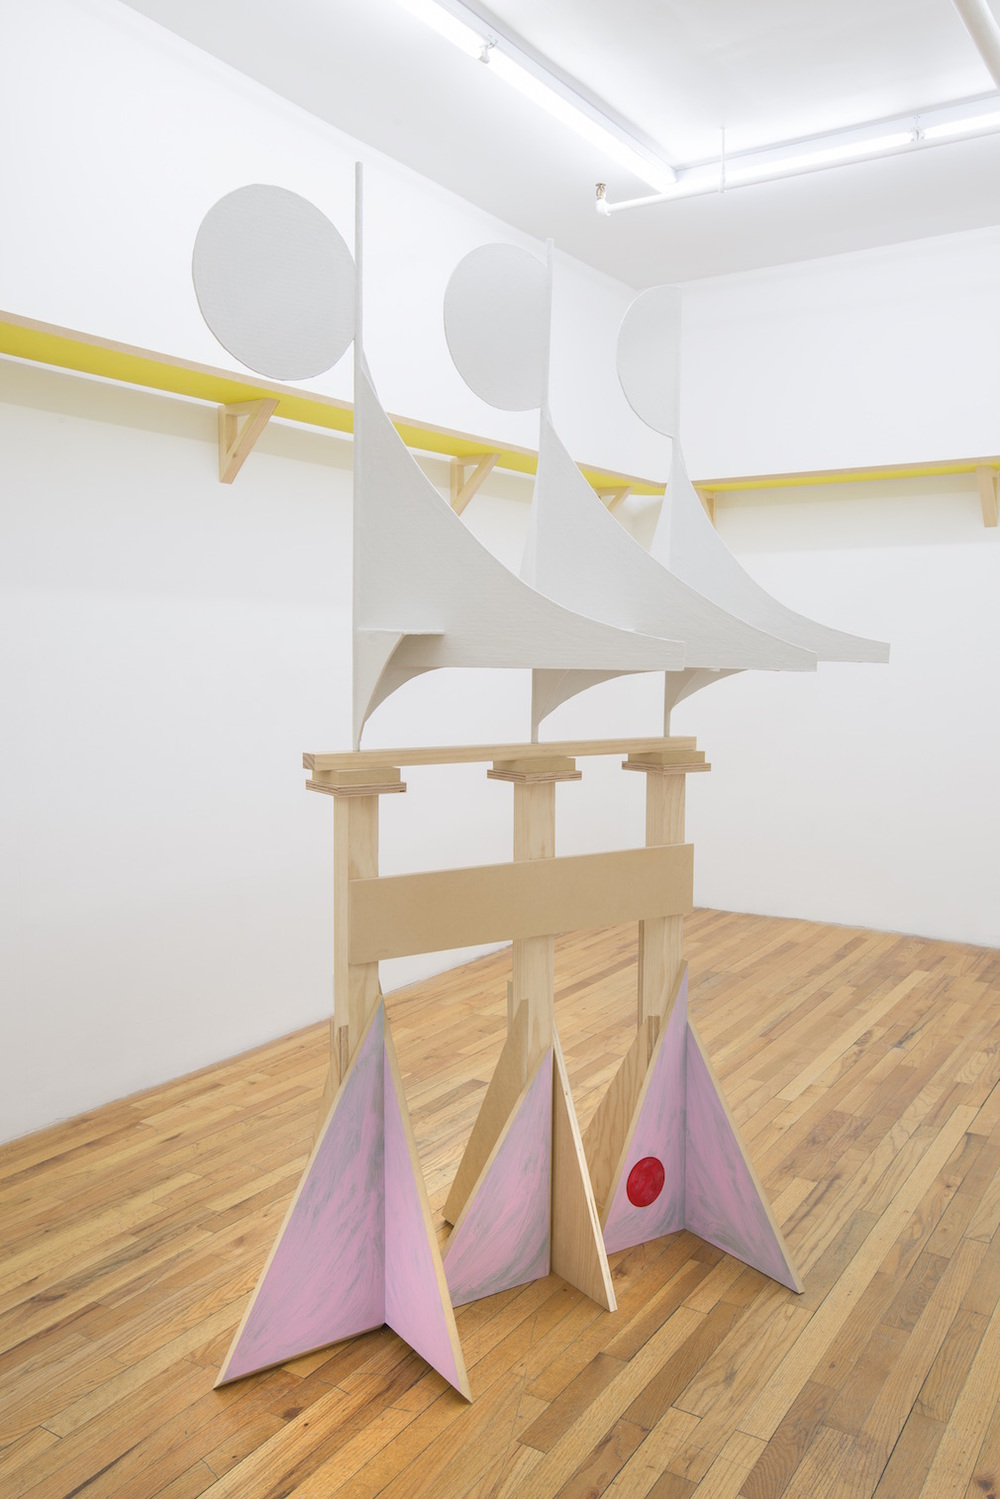 Matisse's Metronome   2015  Wood, steel rod, cardboard, synthetic polymer and plaster  83.5 x 56 x 34 in/ 212 x 142.2 x 86.3 cm